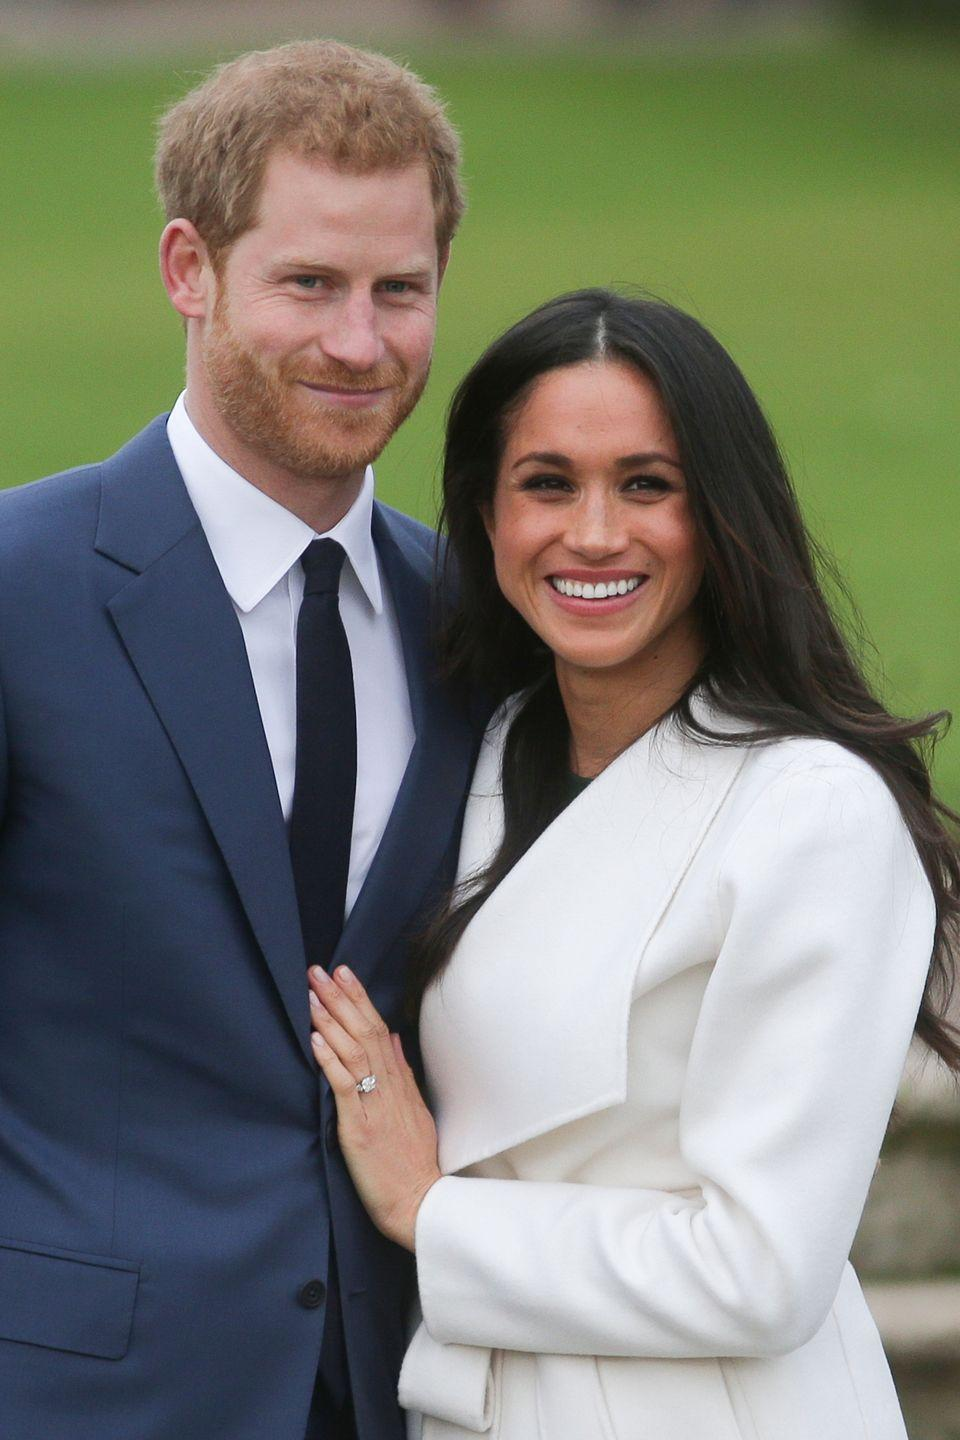 """<p>In November 2017, Prince Harry and Meghan Markle arrived hand in hand at Princess Diana's Memorial Garden in Kensington Palace to <a href=""""https://www.townandcountrymag.com/society/tradition/g13936639/prince-harry-meghan-markle-engagement-photos/"""" rel=""""nofollow noopener"""" target=""""_blank"""" data-ylk=""""slk:announce their engagement"""" class=""""link rapid-noclick-resp"""">announce their engagement</a>. The couple, who <a href=""""https://www.townandcountrymag.com/society/a9664508/prince-harry-meghan-markle-relationship/"""" rel=""""nofollow noopener"""" target=""""_blank"""" data-ylk=""""slk:met through mutual friends"""" class=""""link rapid-noclick-resp"""">met through mutual friends</a> in London in 2016, were married in St. George's Chapel at Windsor Castle in May of 2018. </p>"""